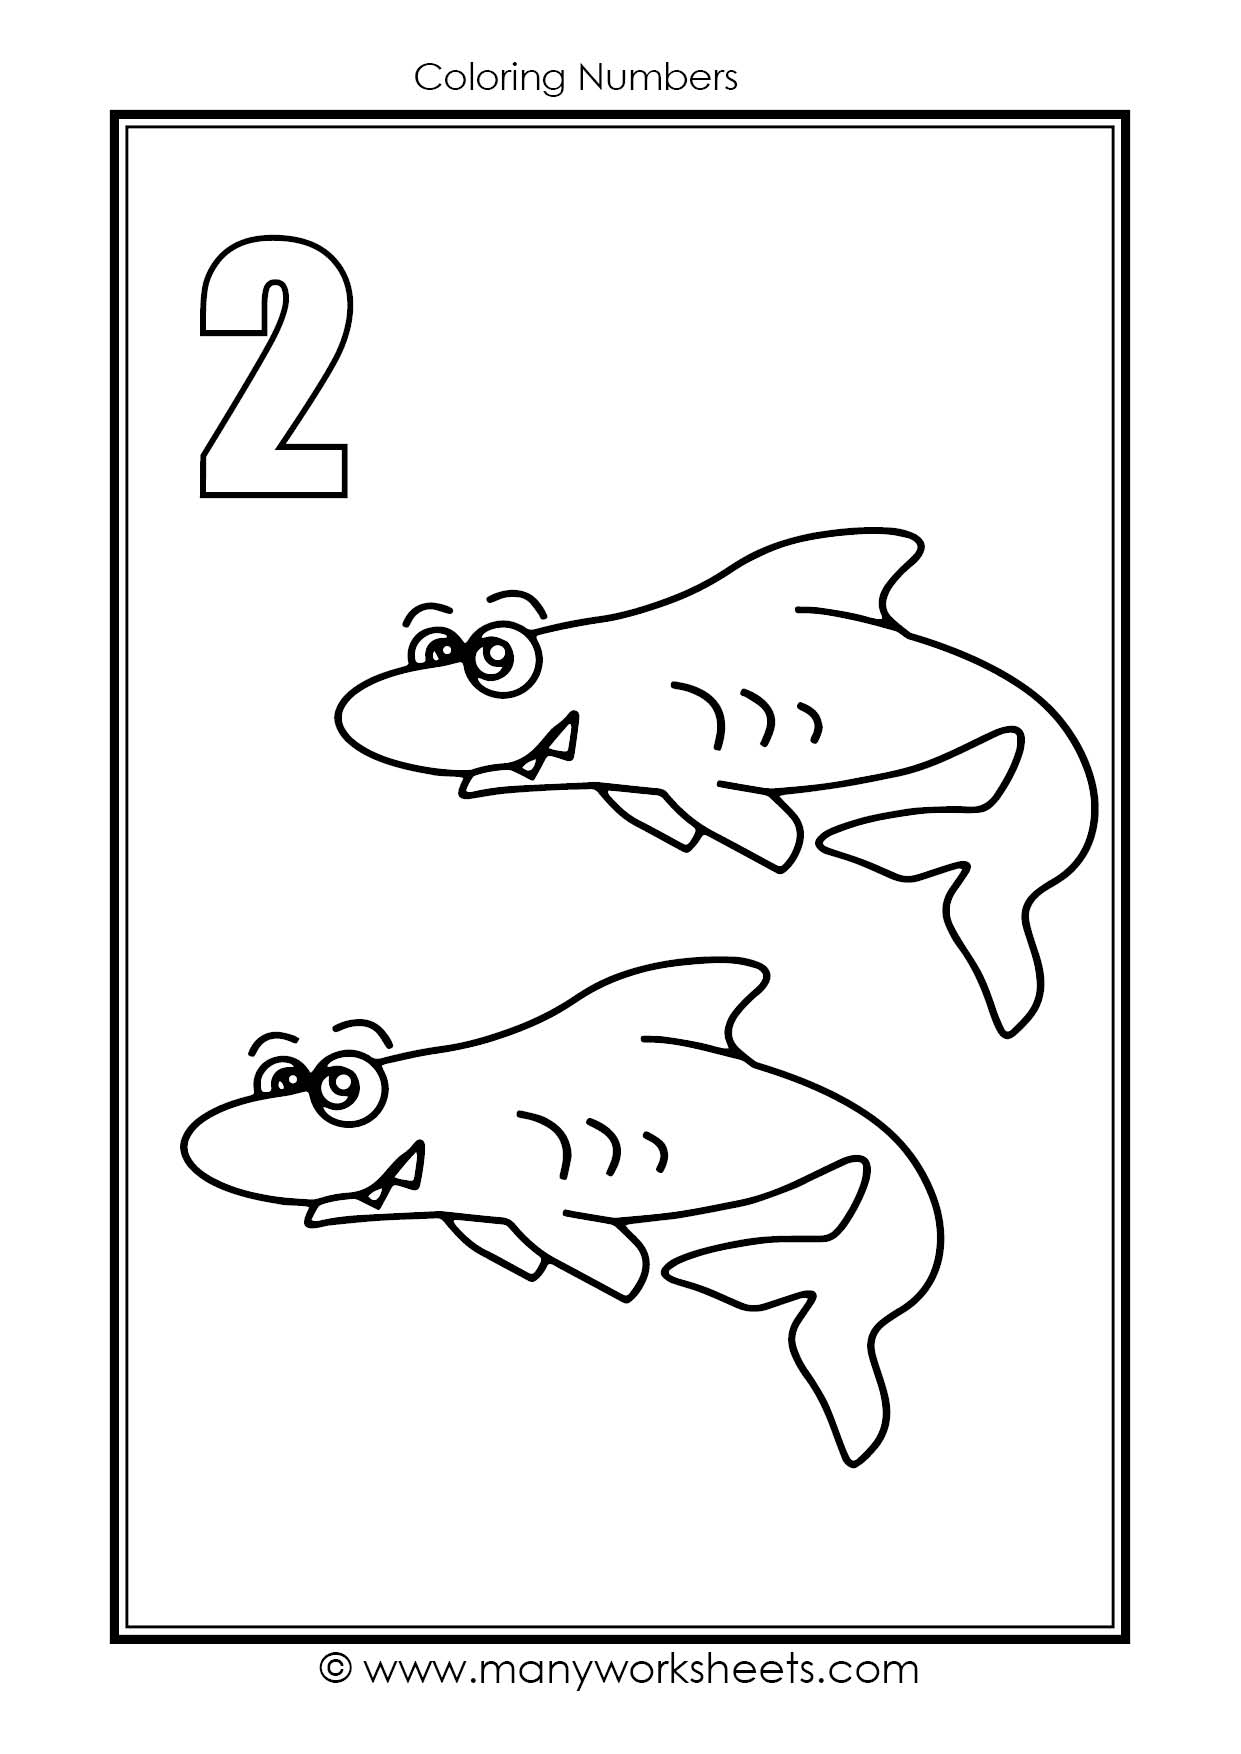 hight resolution of Learning Worksheets Wild Animal Coloring Pages 4th Grade Math Fractions  Worksheets Tracing Numbers 1-10 Grade3